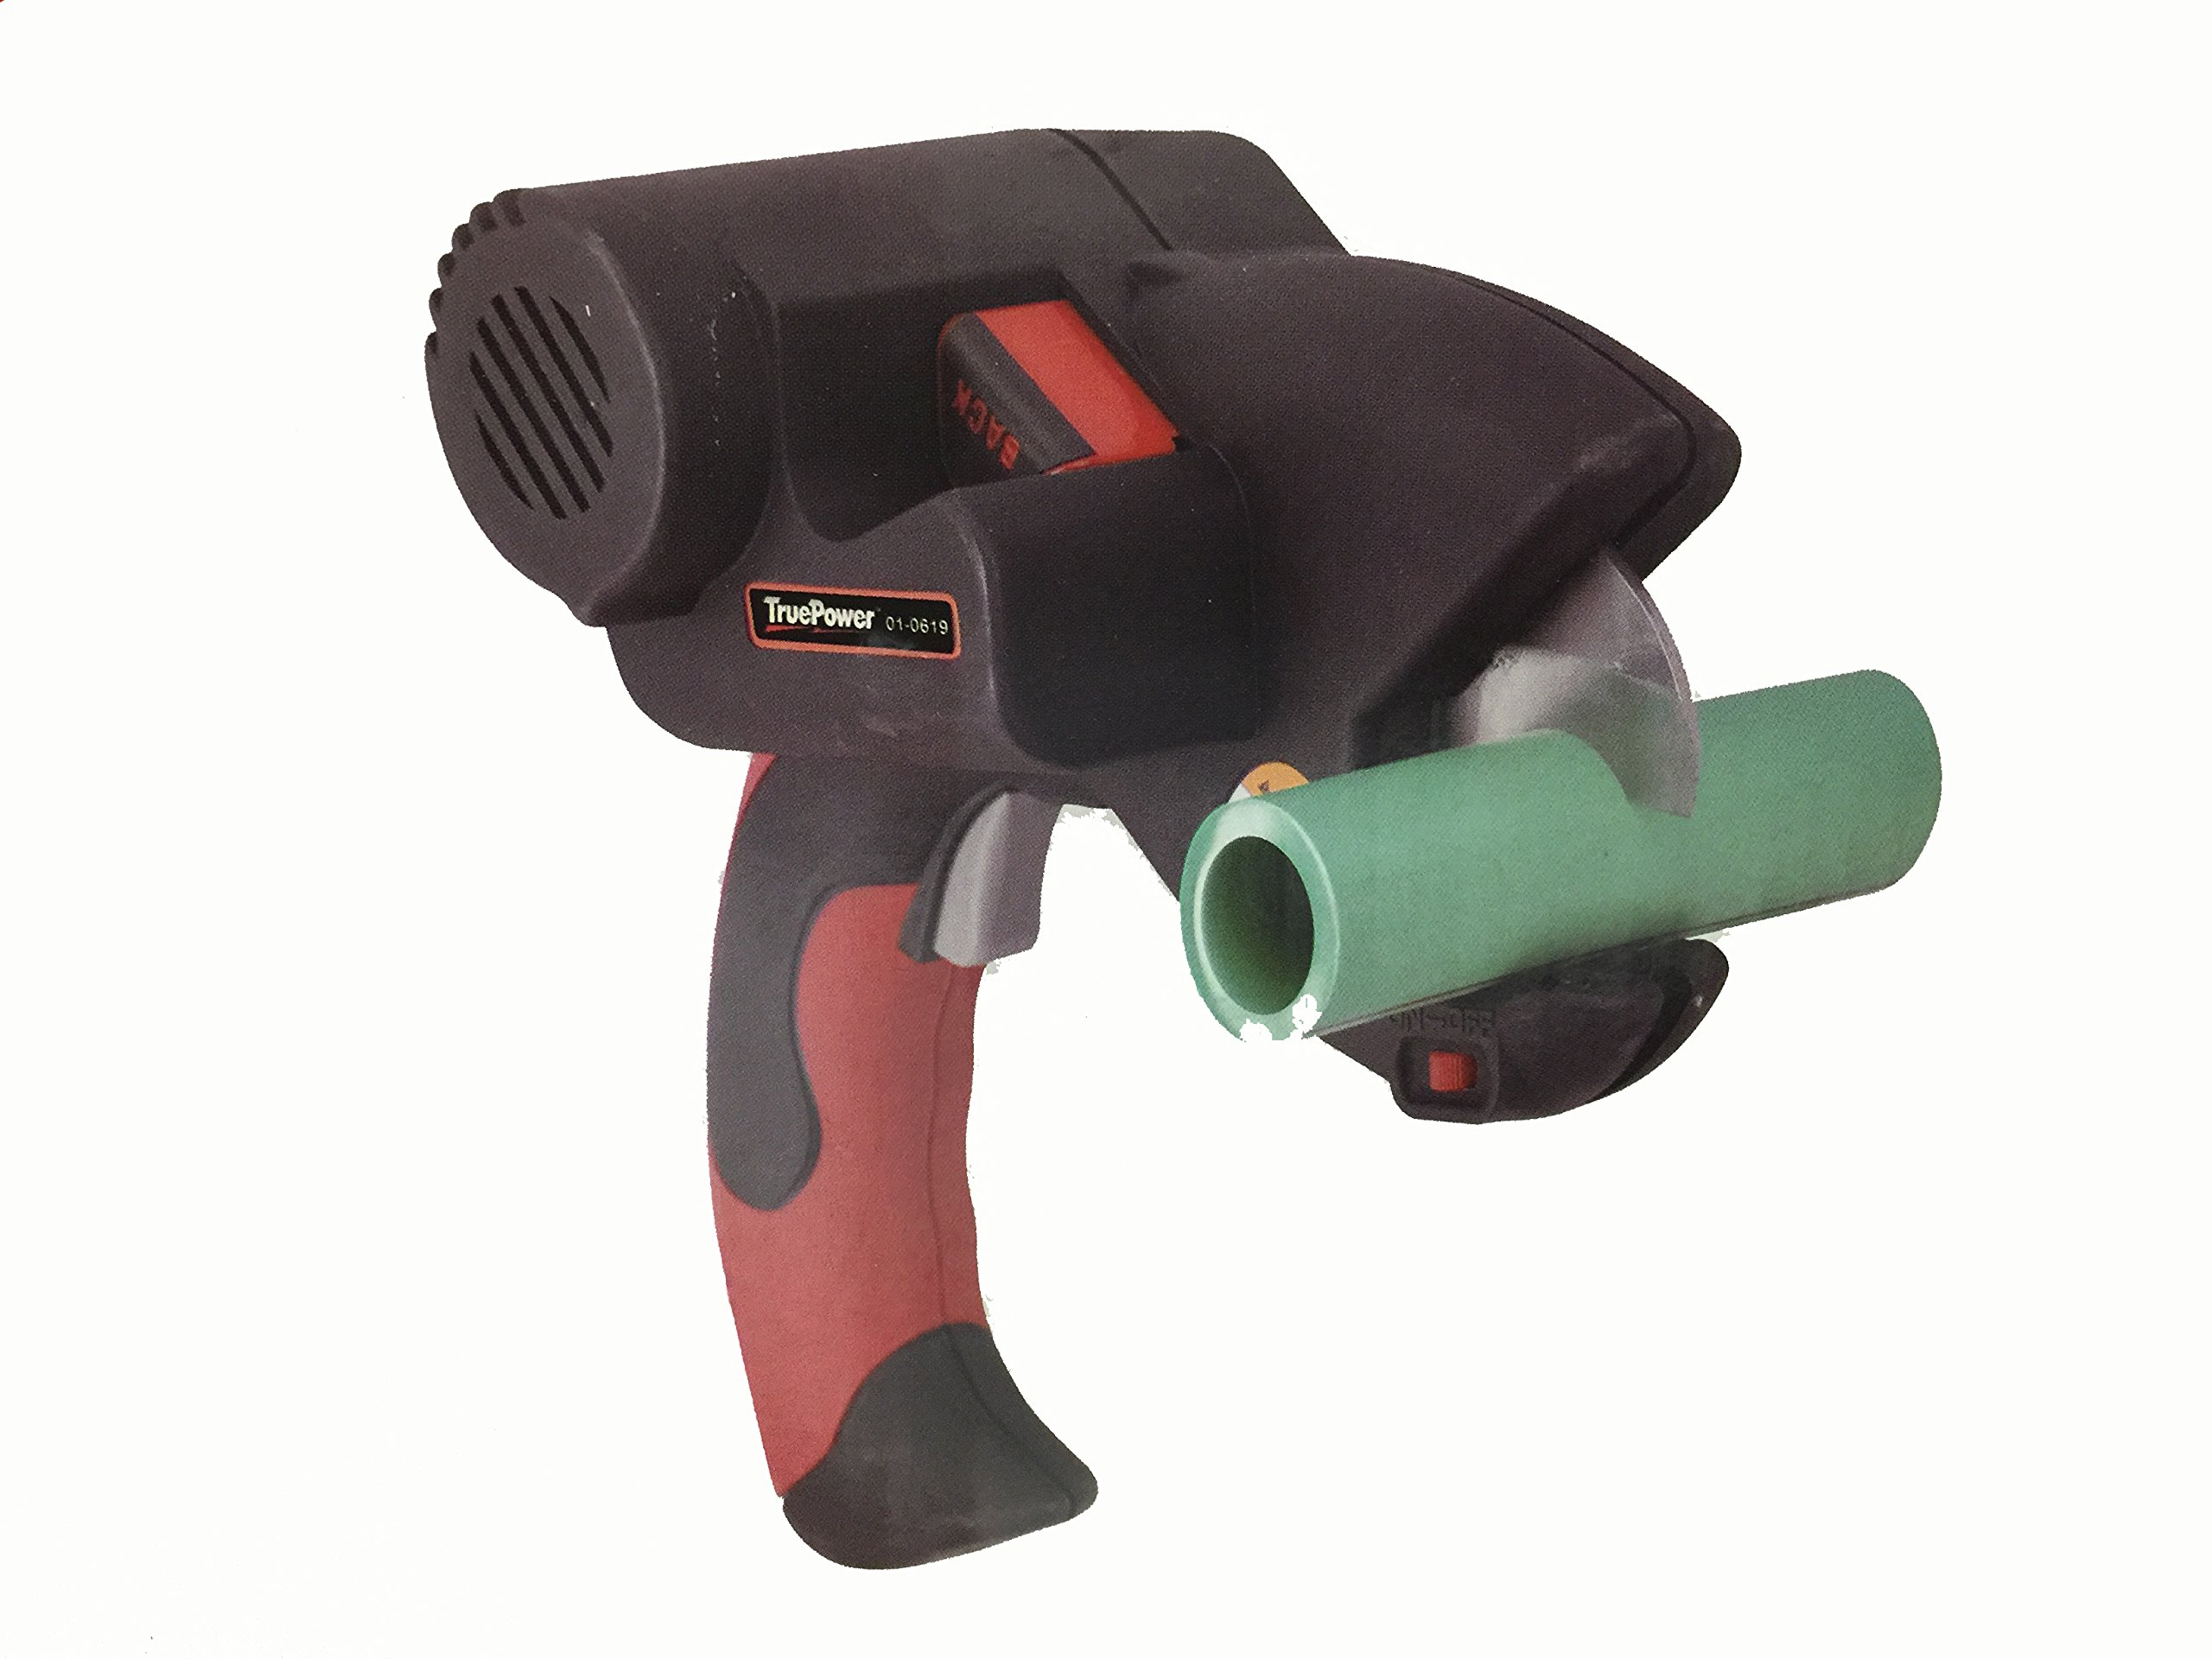 TruePower 01-0619 9.6V Battery Powered Rechargeable Cordless PVC Pipe Cutter